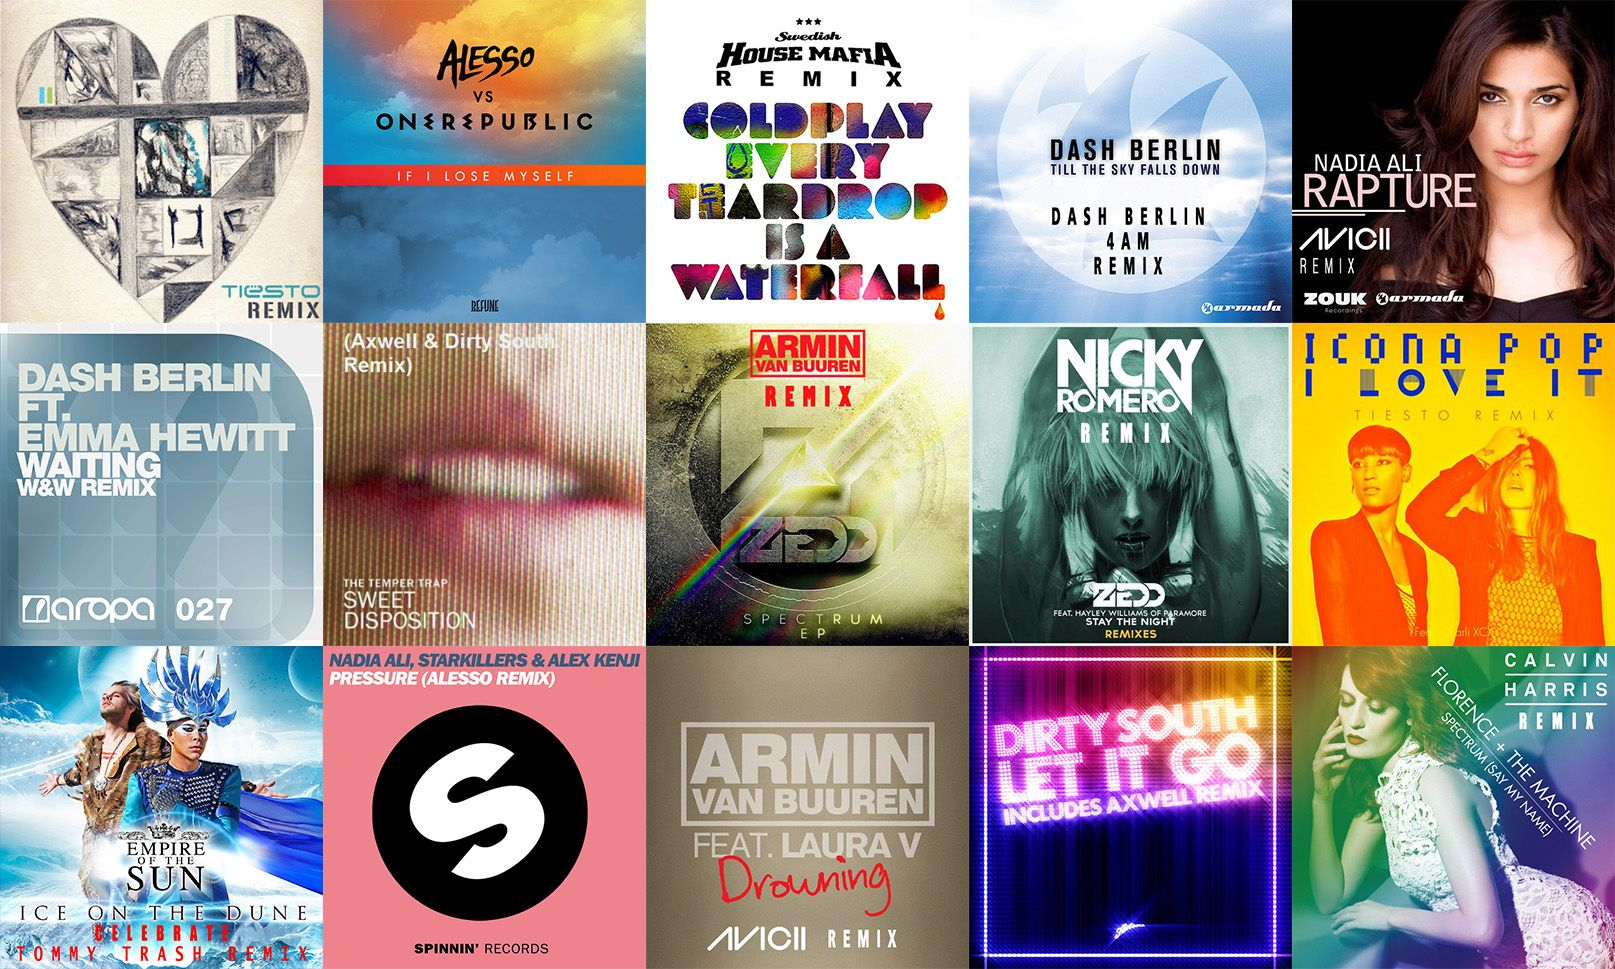 Relive the magical years of the modern EDM era from the eyes of game changing remixes by artists like Tiesto, Alesso, Axwell, Avicii and many more.